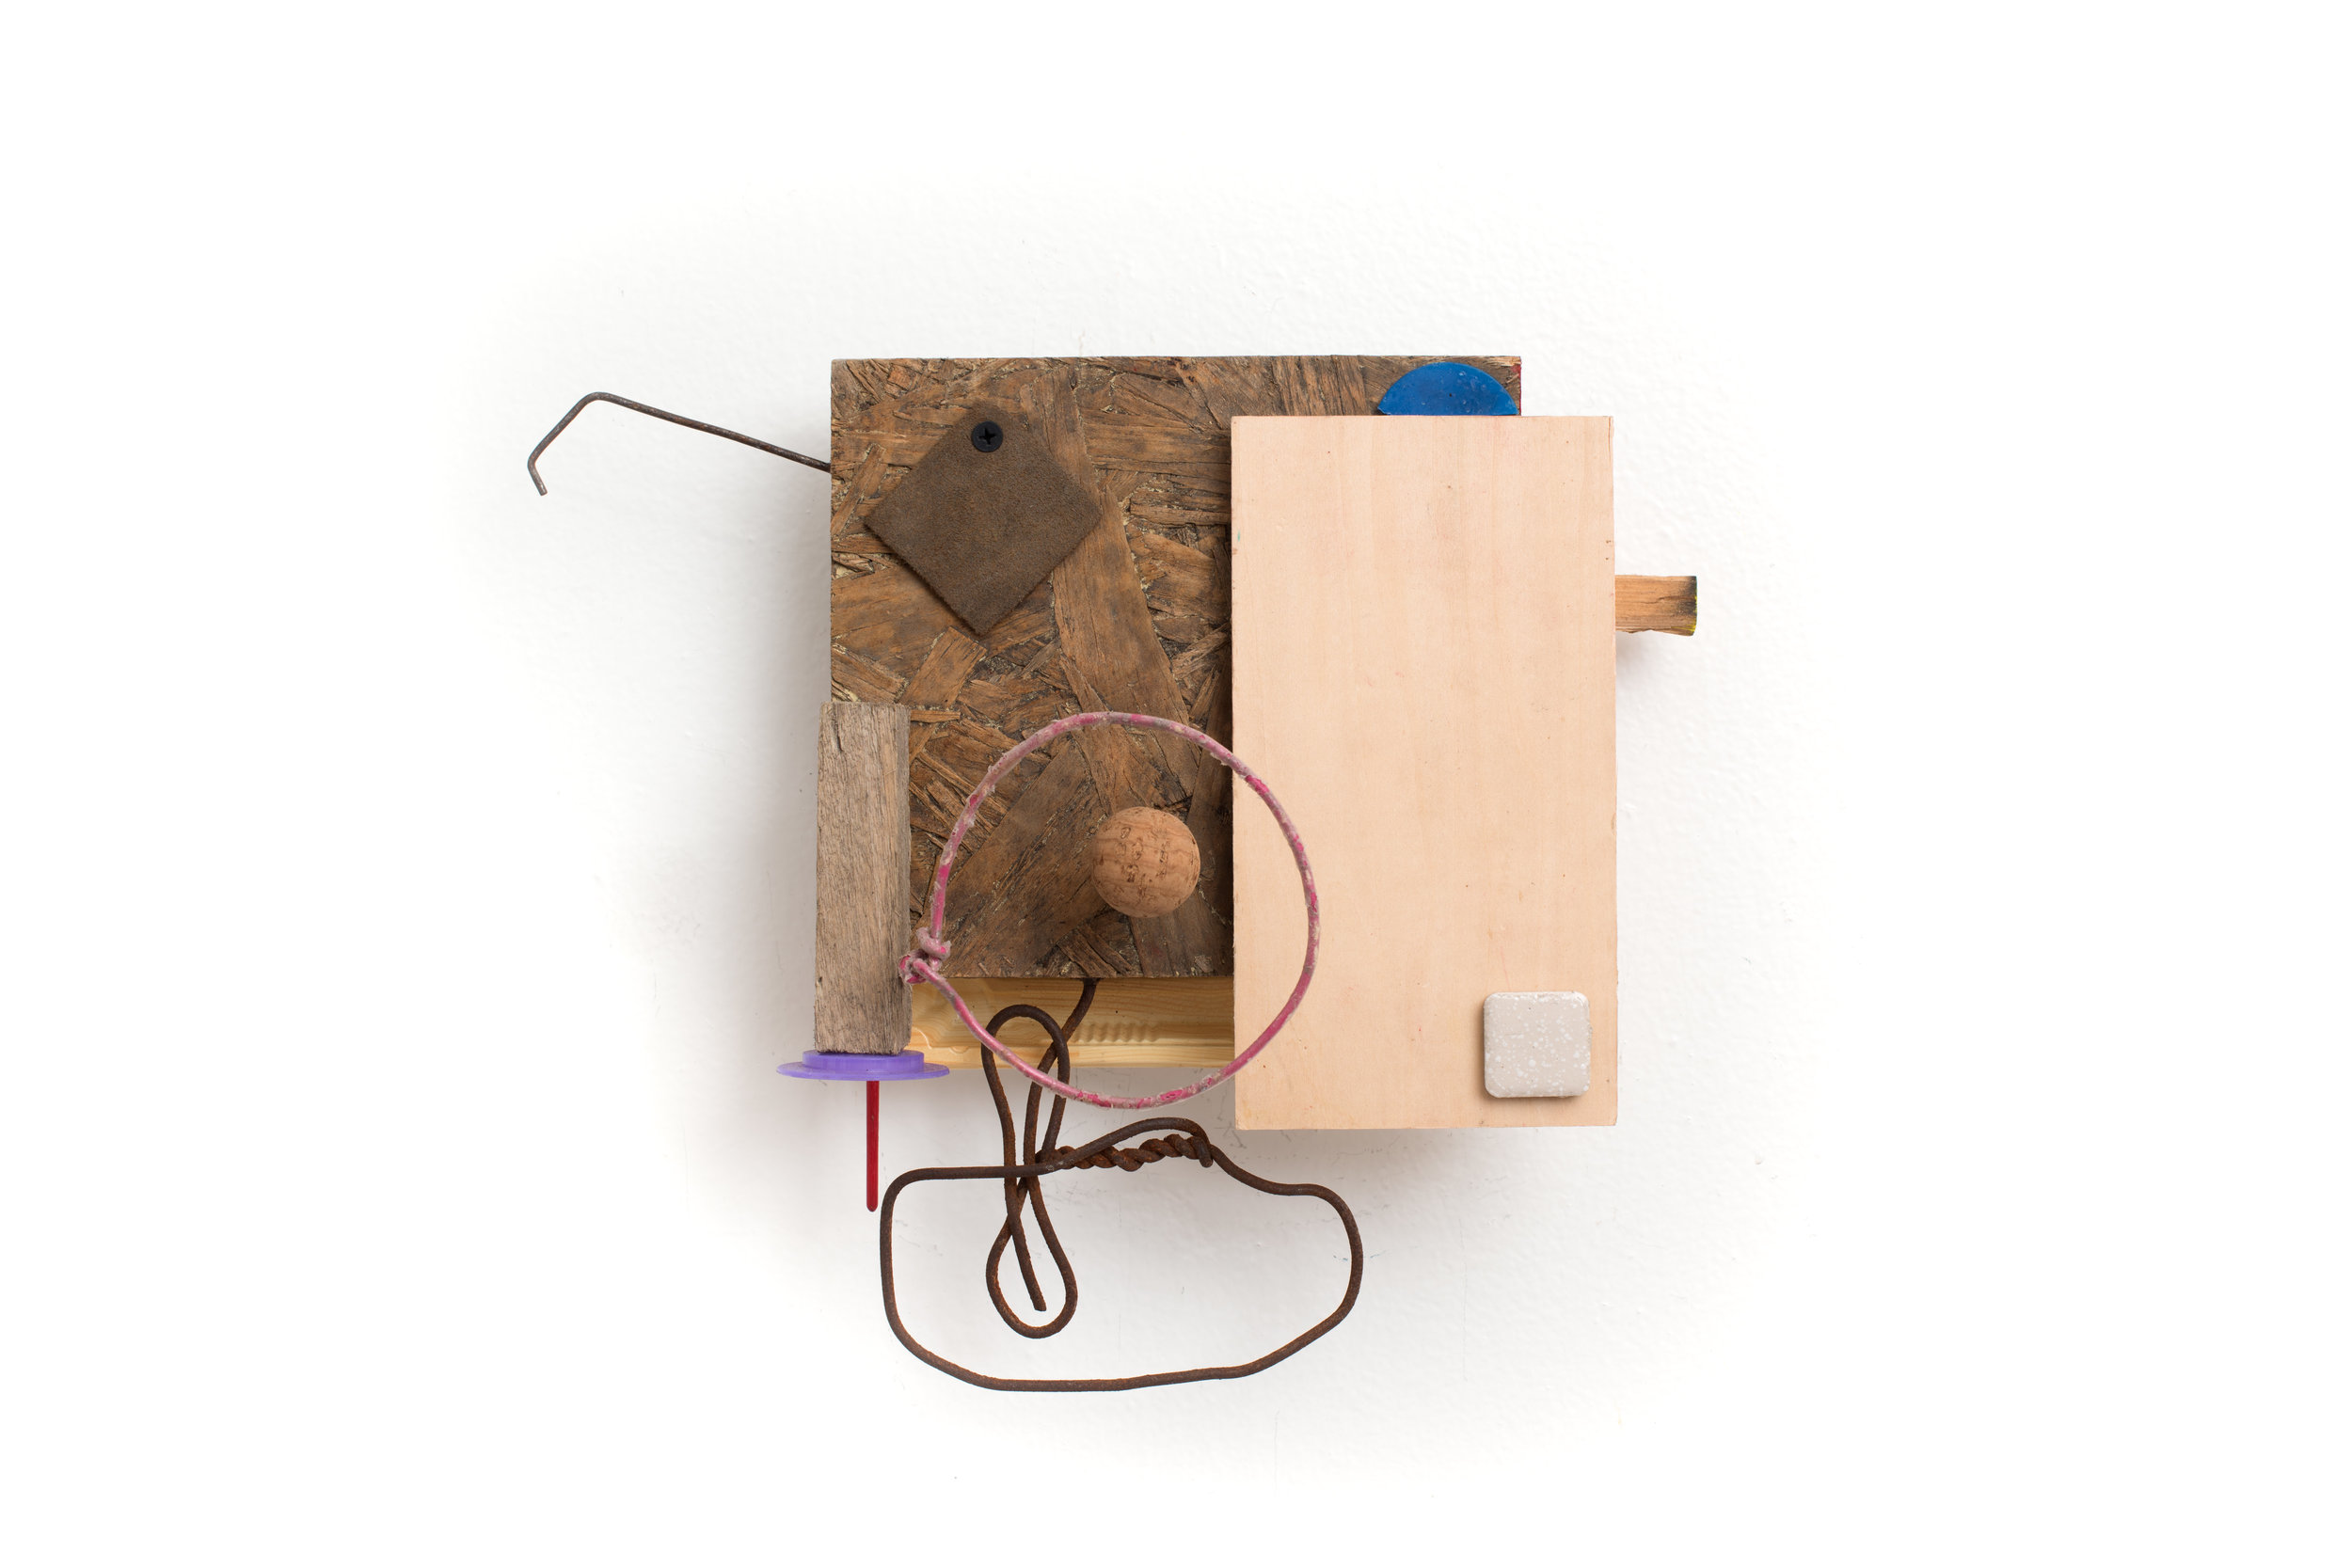 Self-Certainty  Found object, hardware 10 1/2 x 12 1/2 inches    New York, 2018